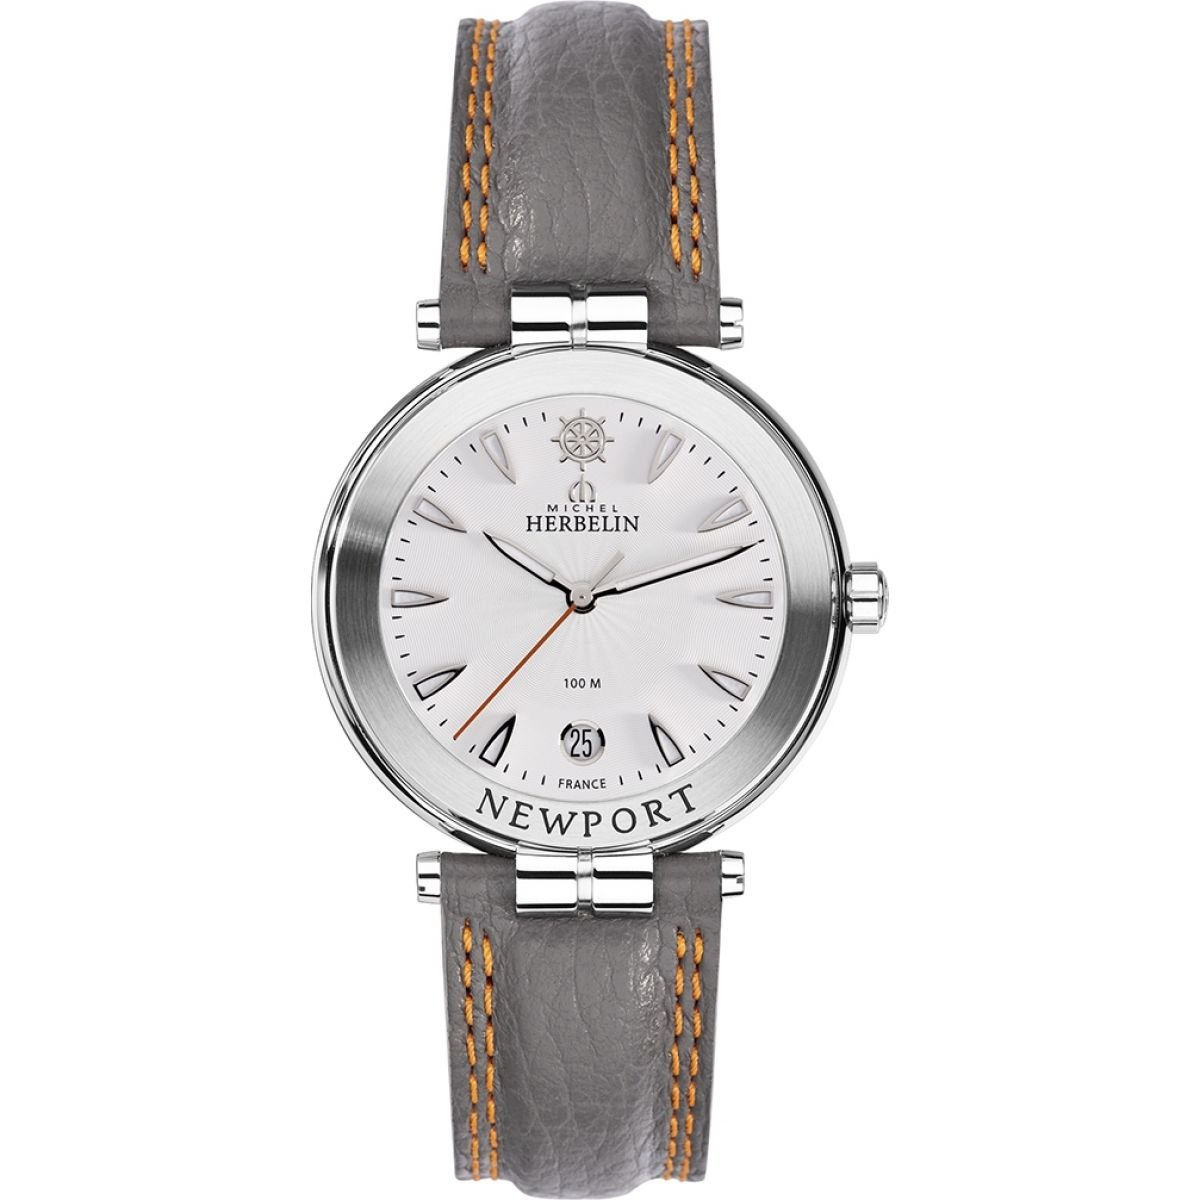 Men's Watch Michel Herbelin - 12255/11GR - Newport - White Dial - Grey Leather Band